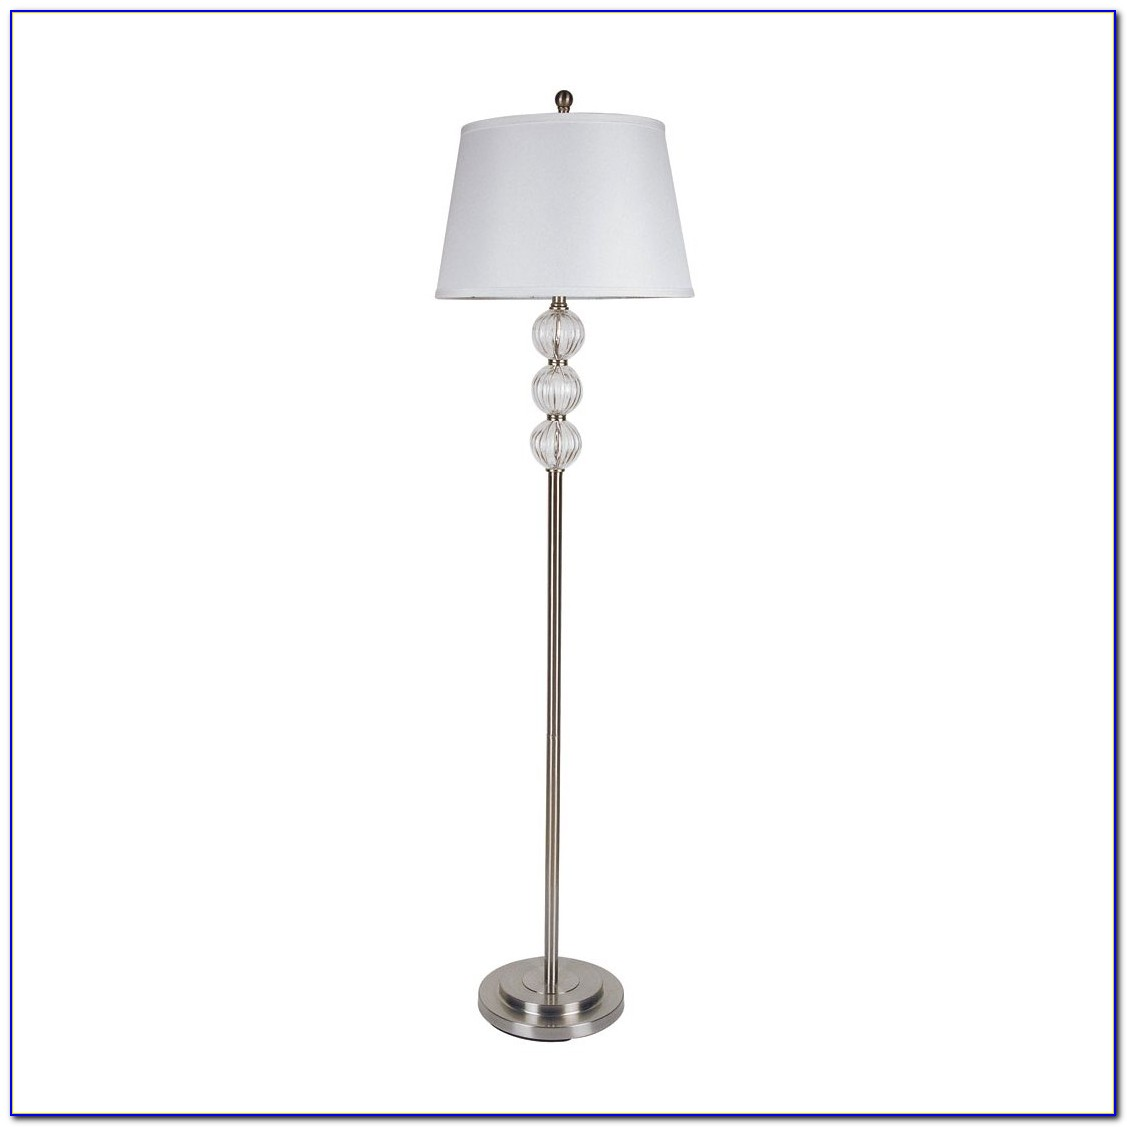 Ore International Arc Floor Lamp